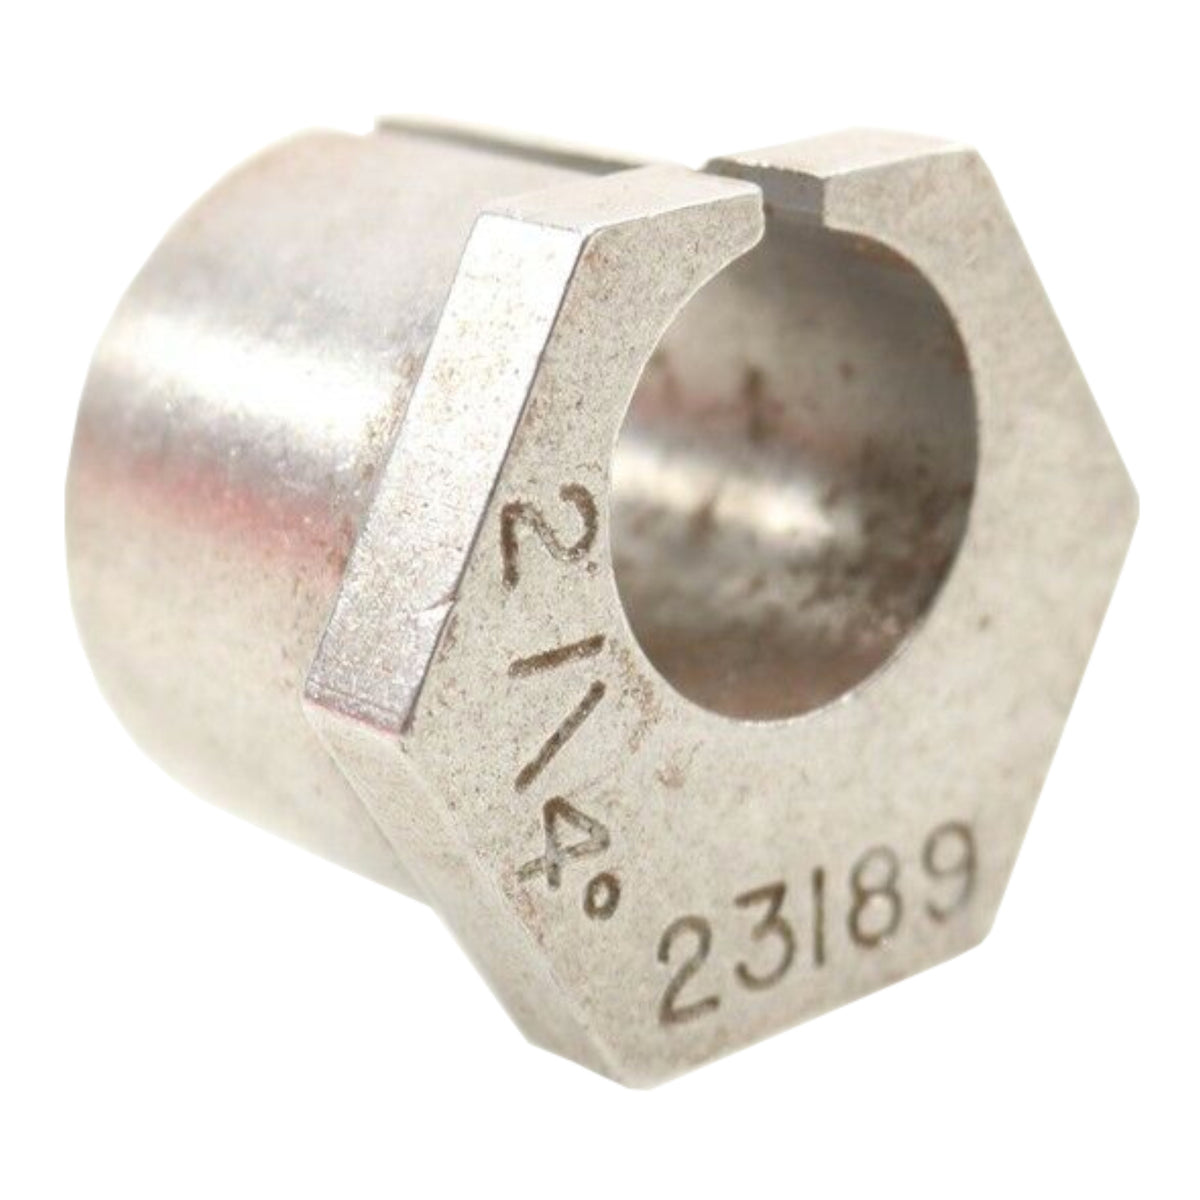 Specialty 23189 Camber/Caster Sleeve (2 1/4°)